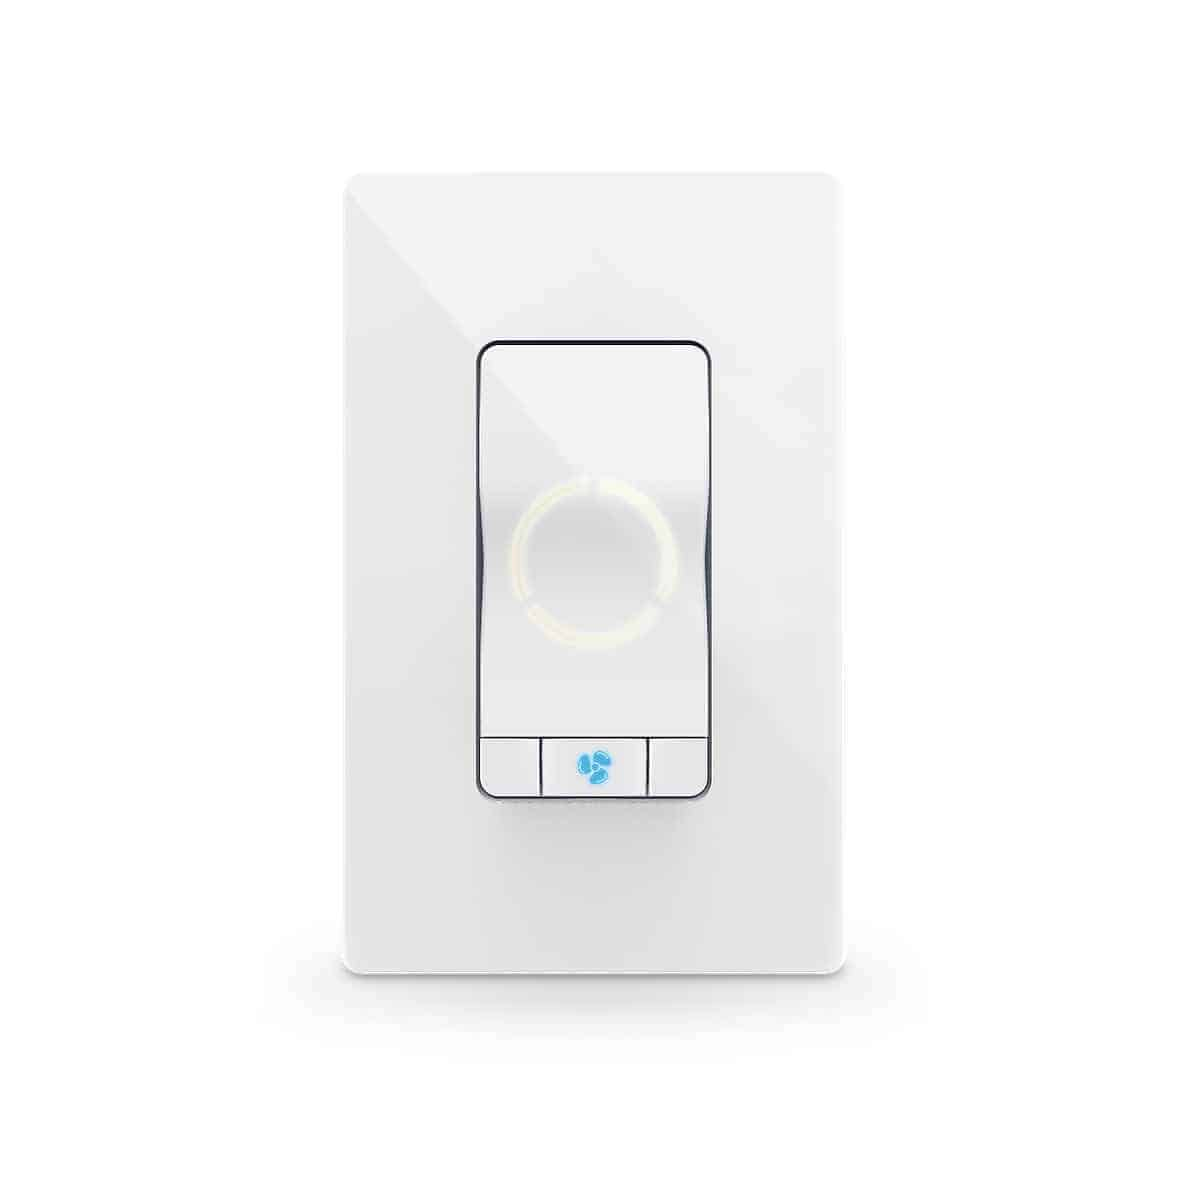 iDevices Smart Ceiling Fan Switch 1